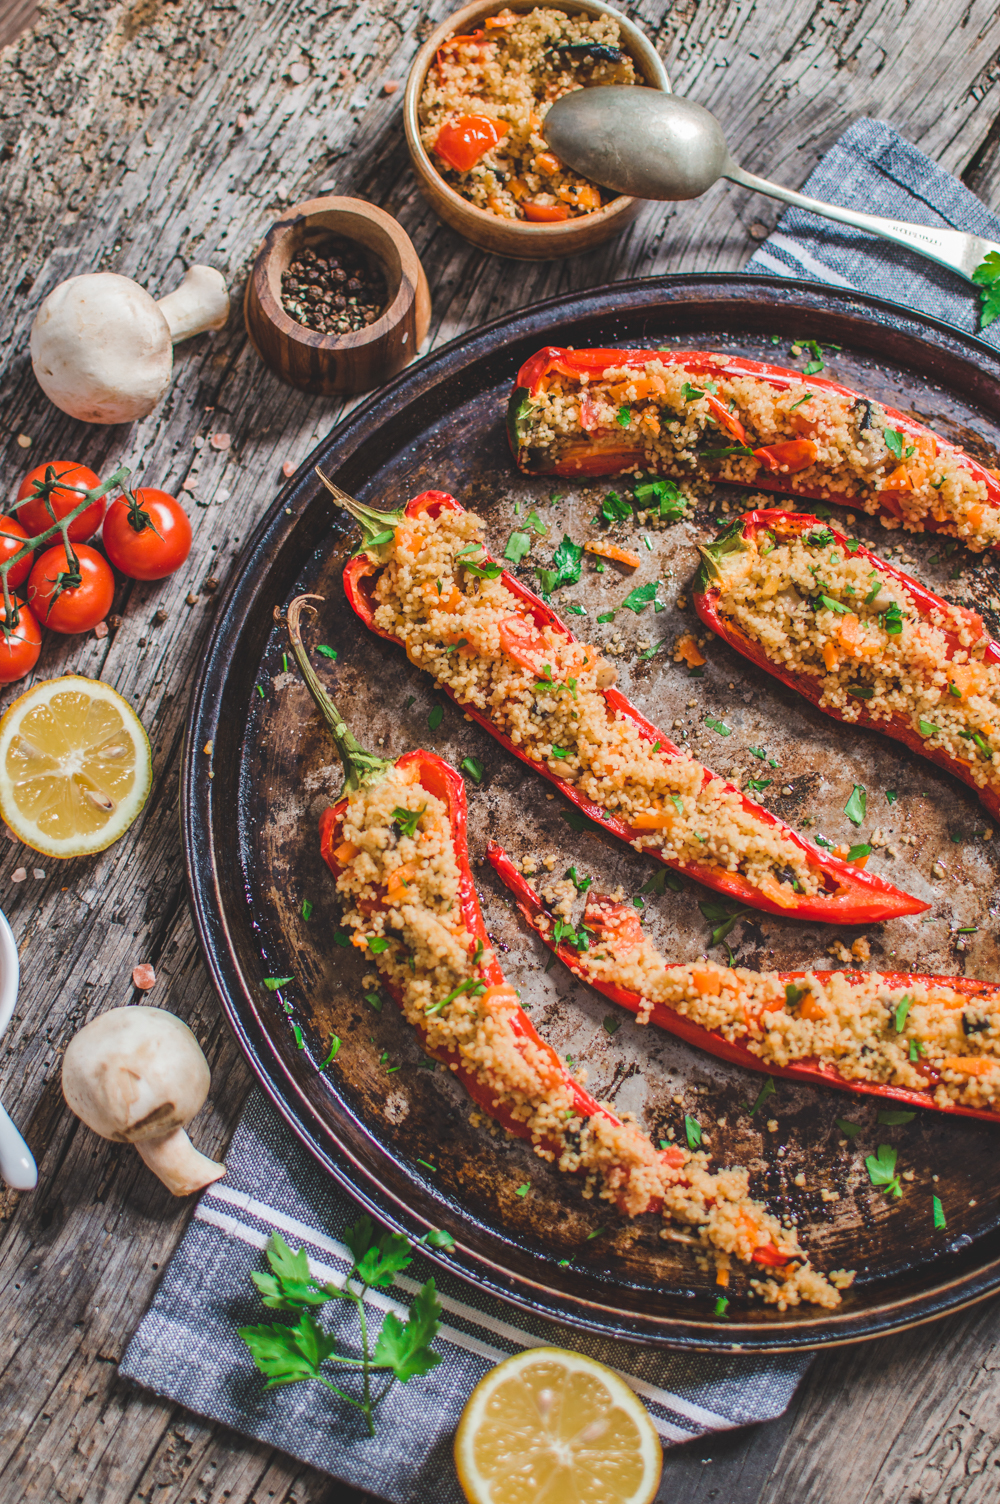 Couscous Stuffed Peppers served on a round serving dish with some ingredients on the side